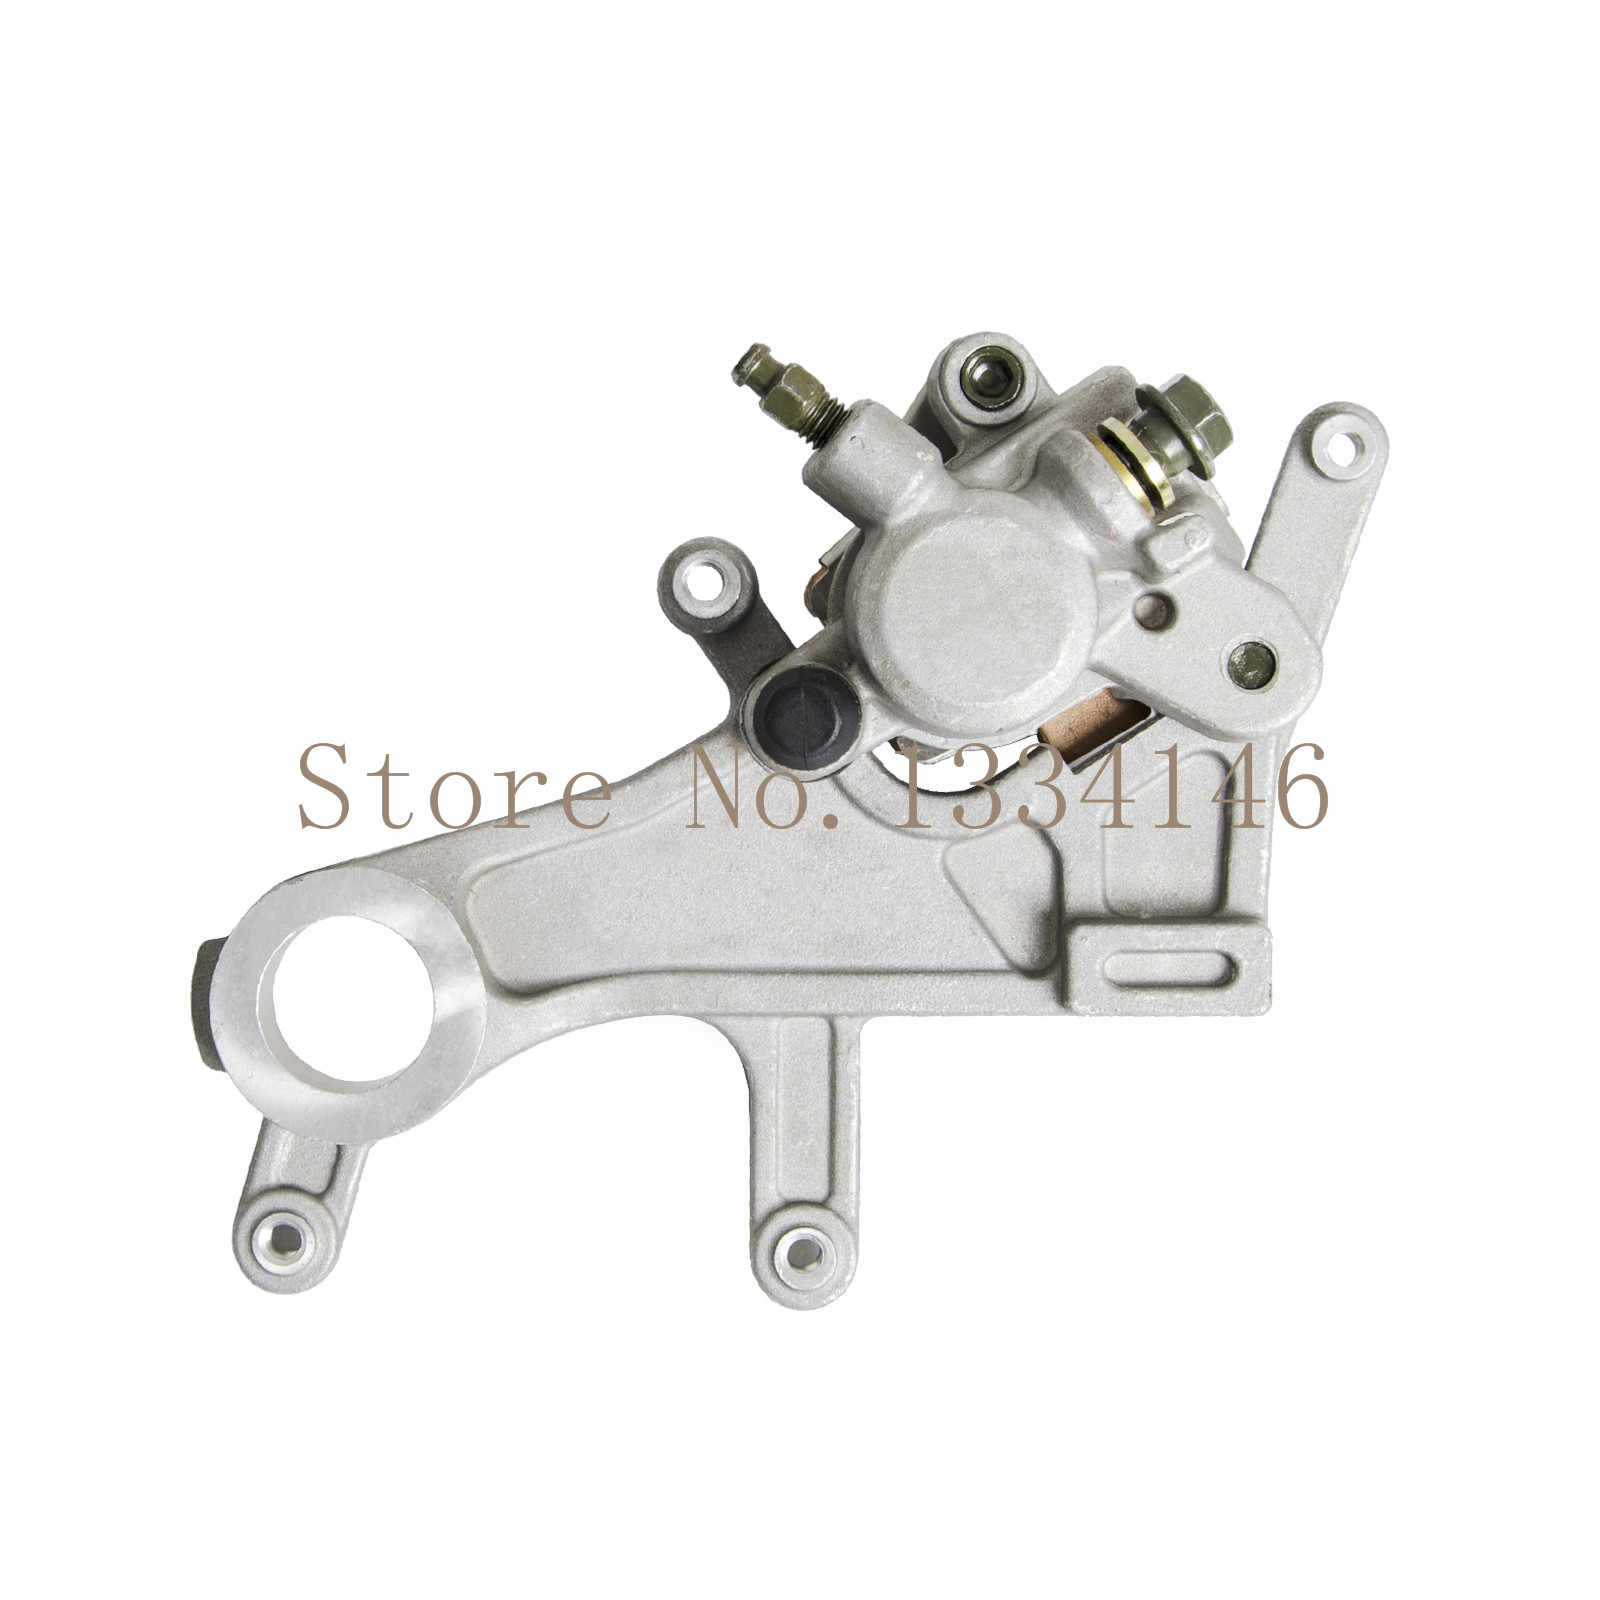 hight resolution of  detail feedback questions about motorcycle rear ke caliper for on 2016 honda xr650r how to wire